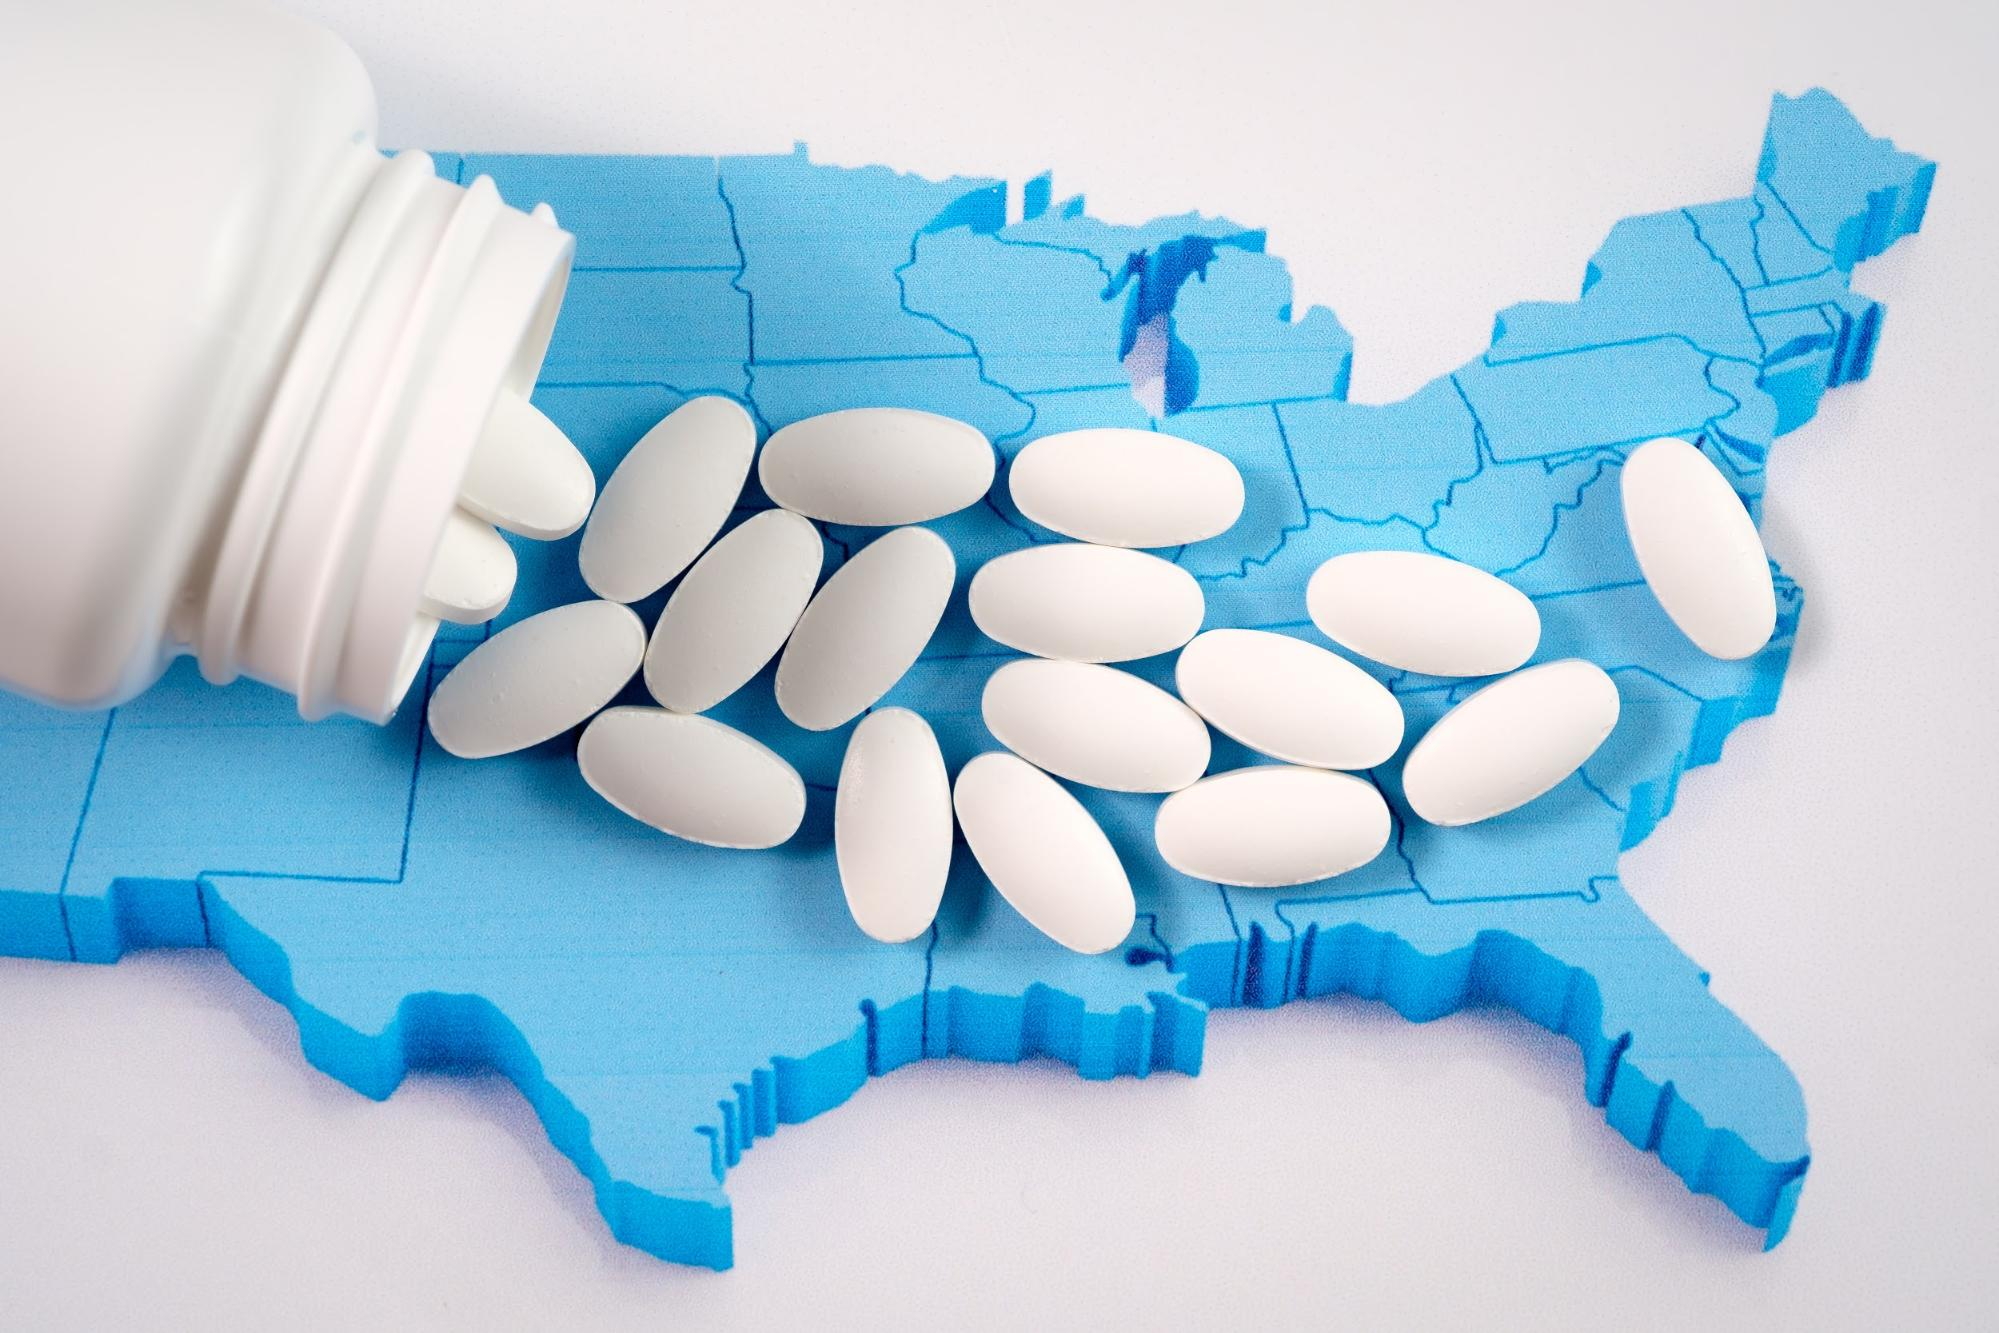 White pills spilled on top of a blue outline of the United States